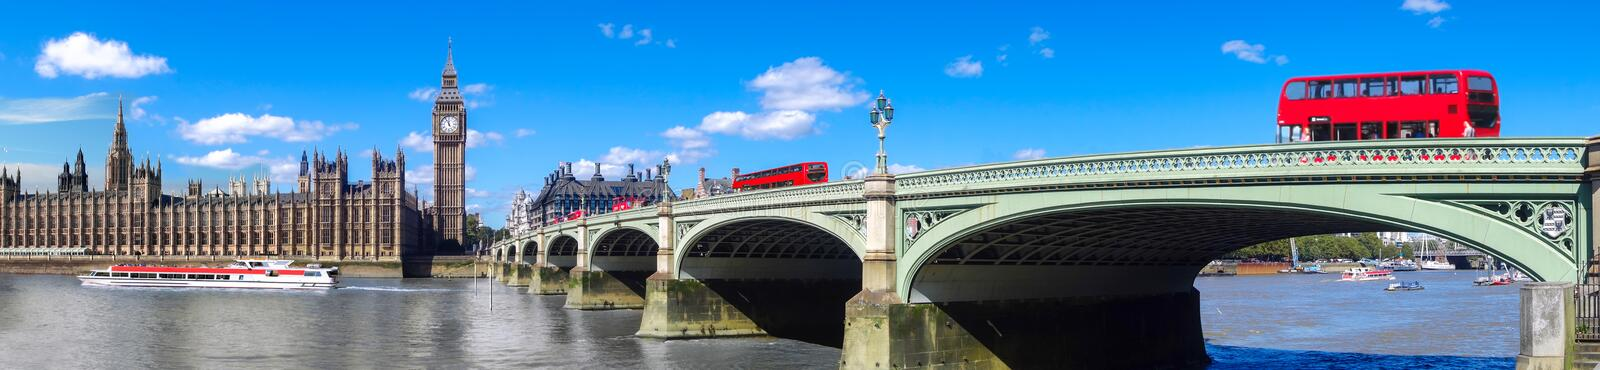 London panorama with red buses on bridge against Big Ben in England, UK stock photography